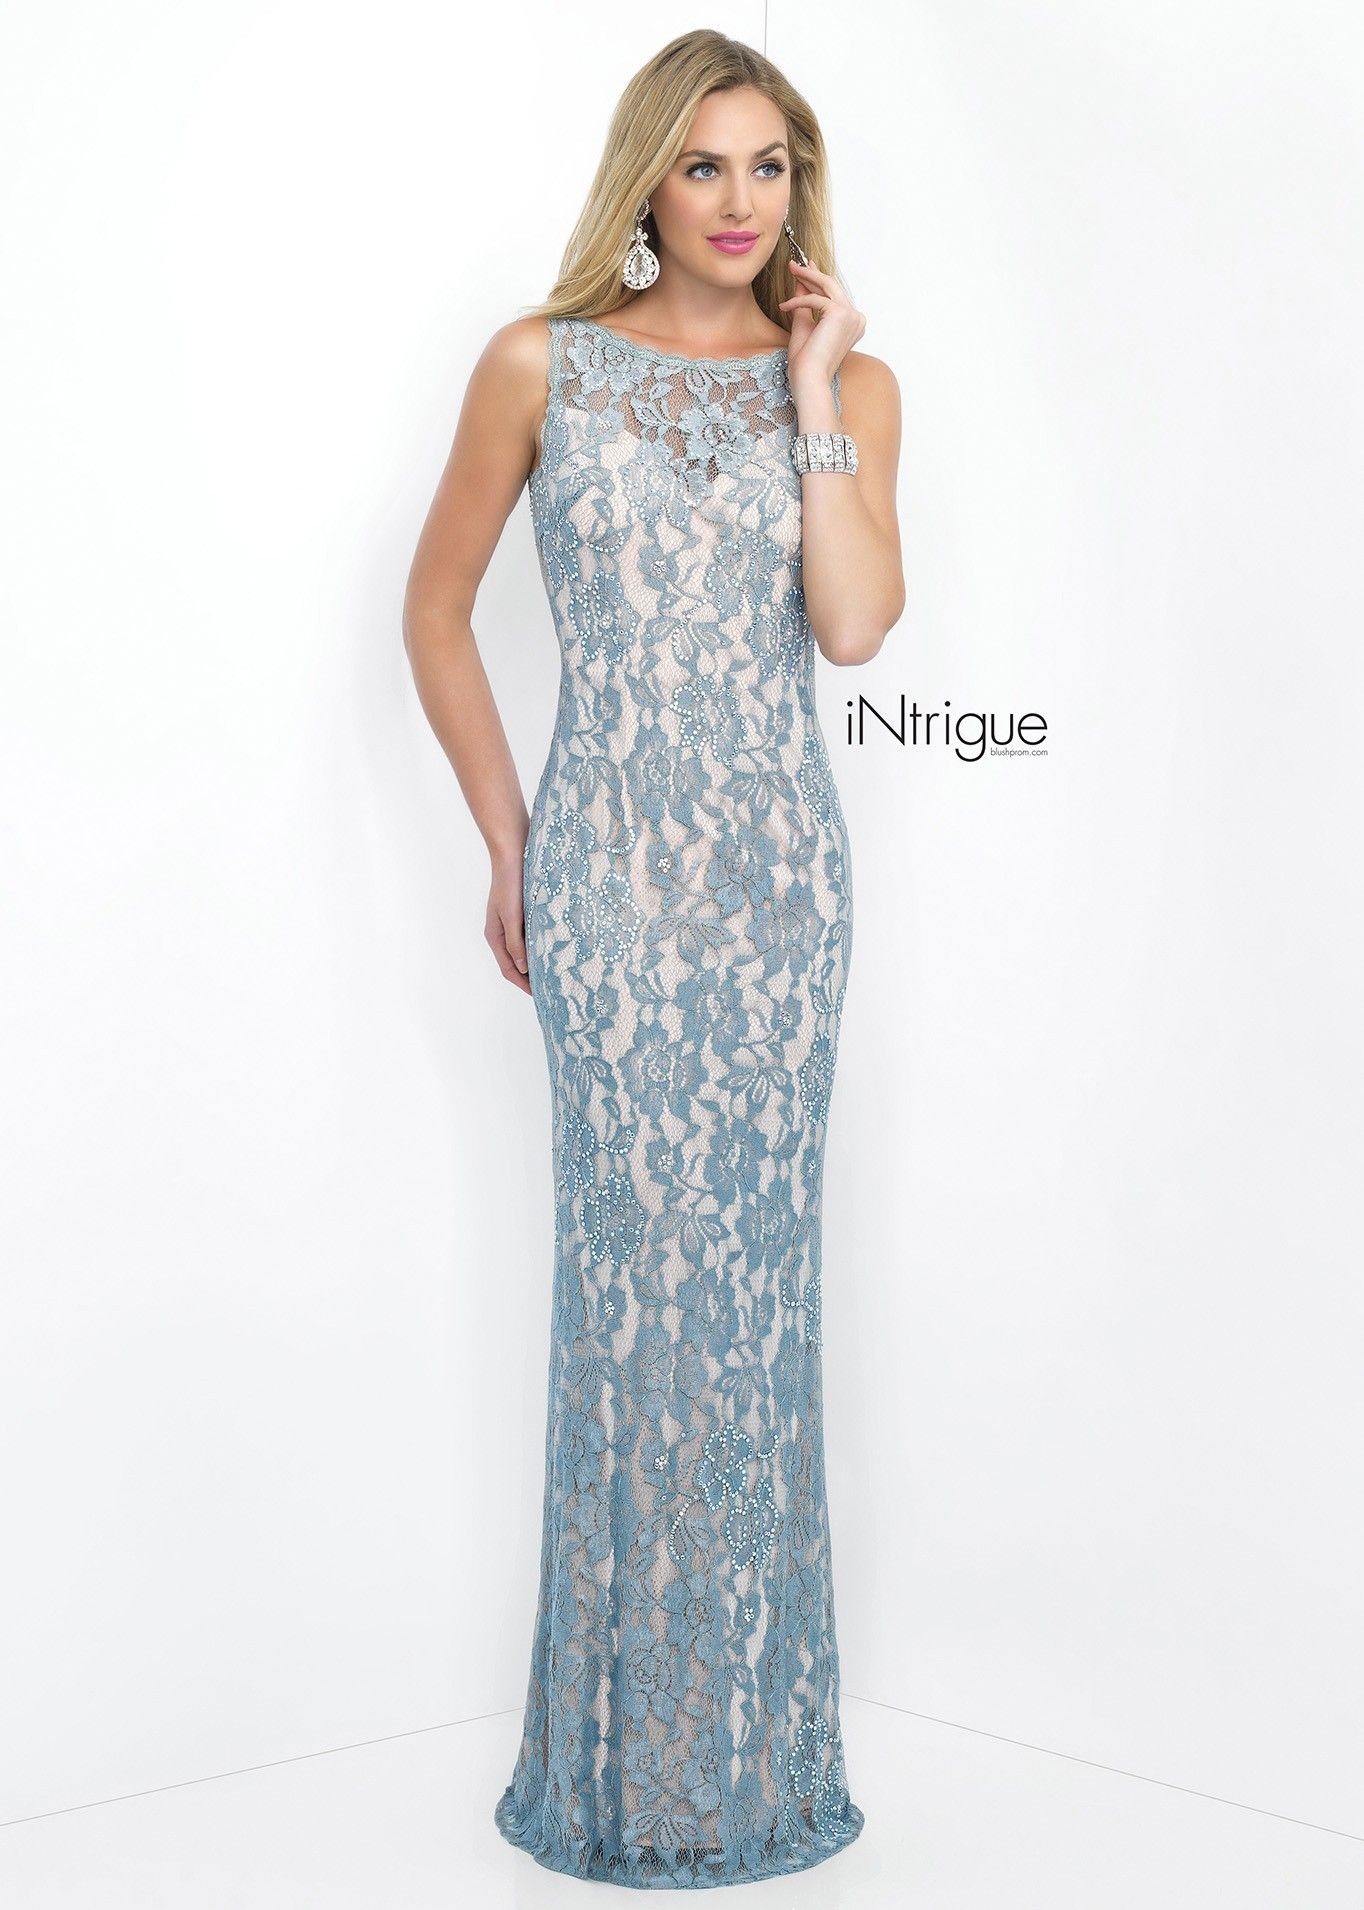 Intrigue silver divine high neck sheath evening gown classy in